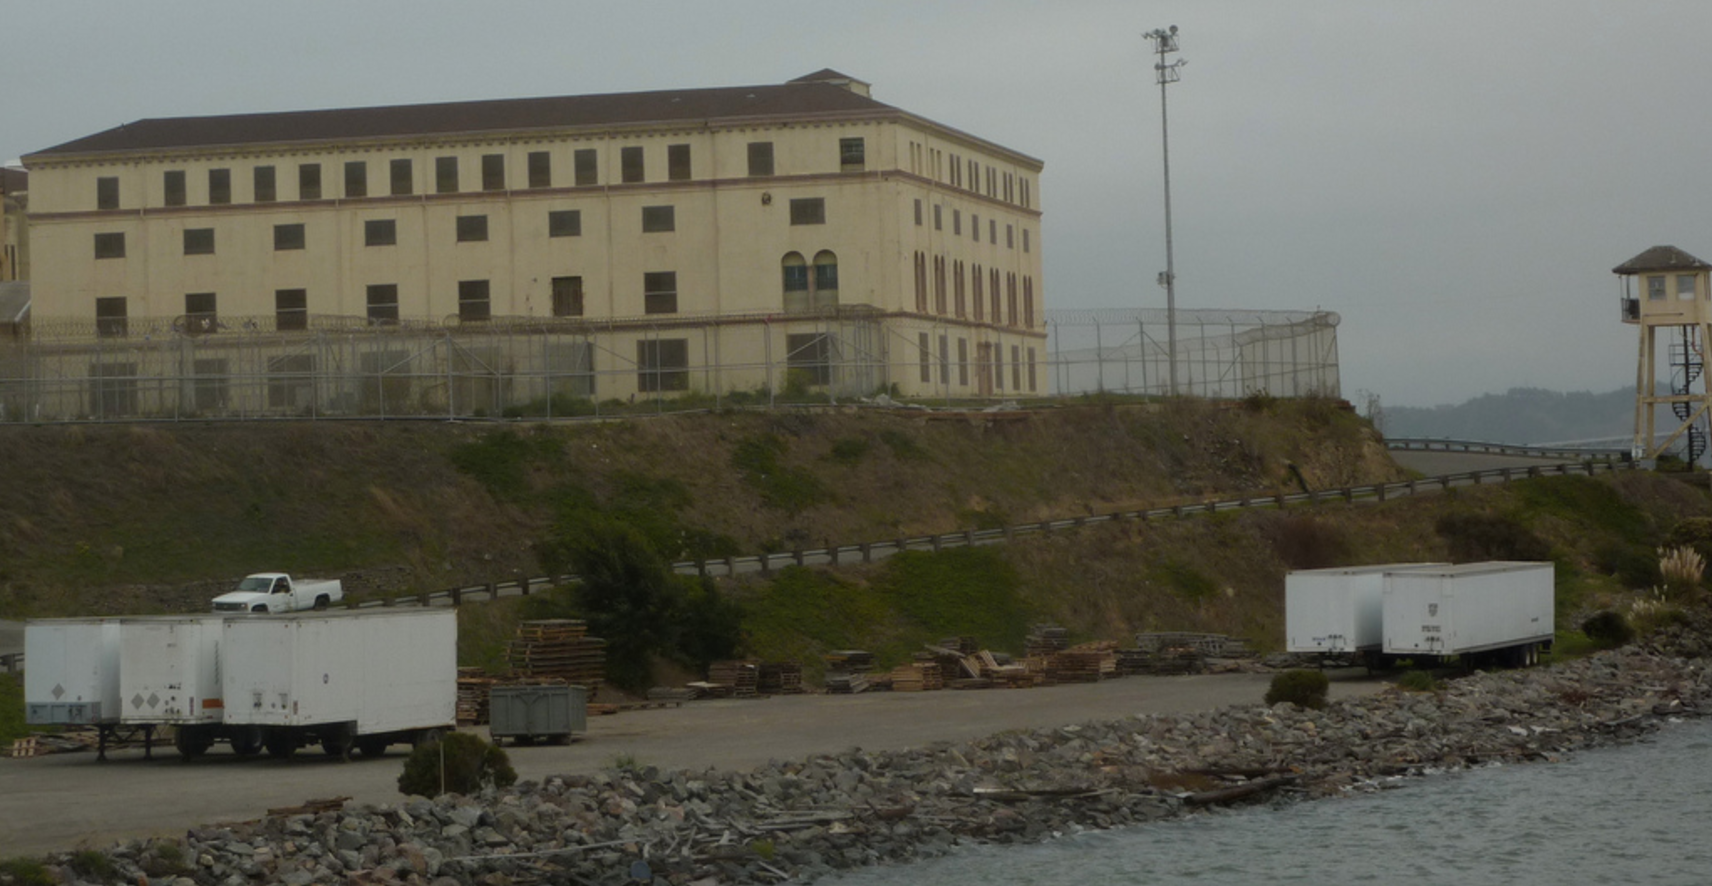 San Quentin State Prison in San Francisco, where California's Death Row Inmates are Housed.